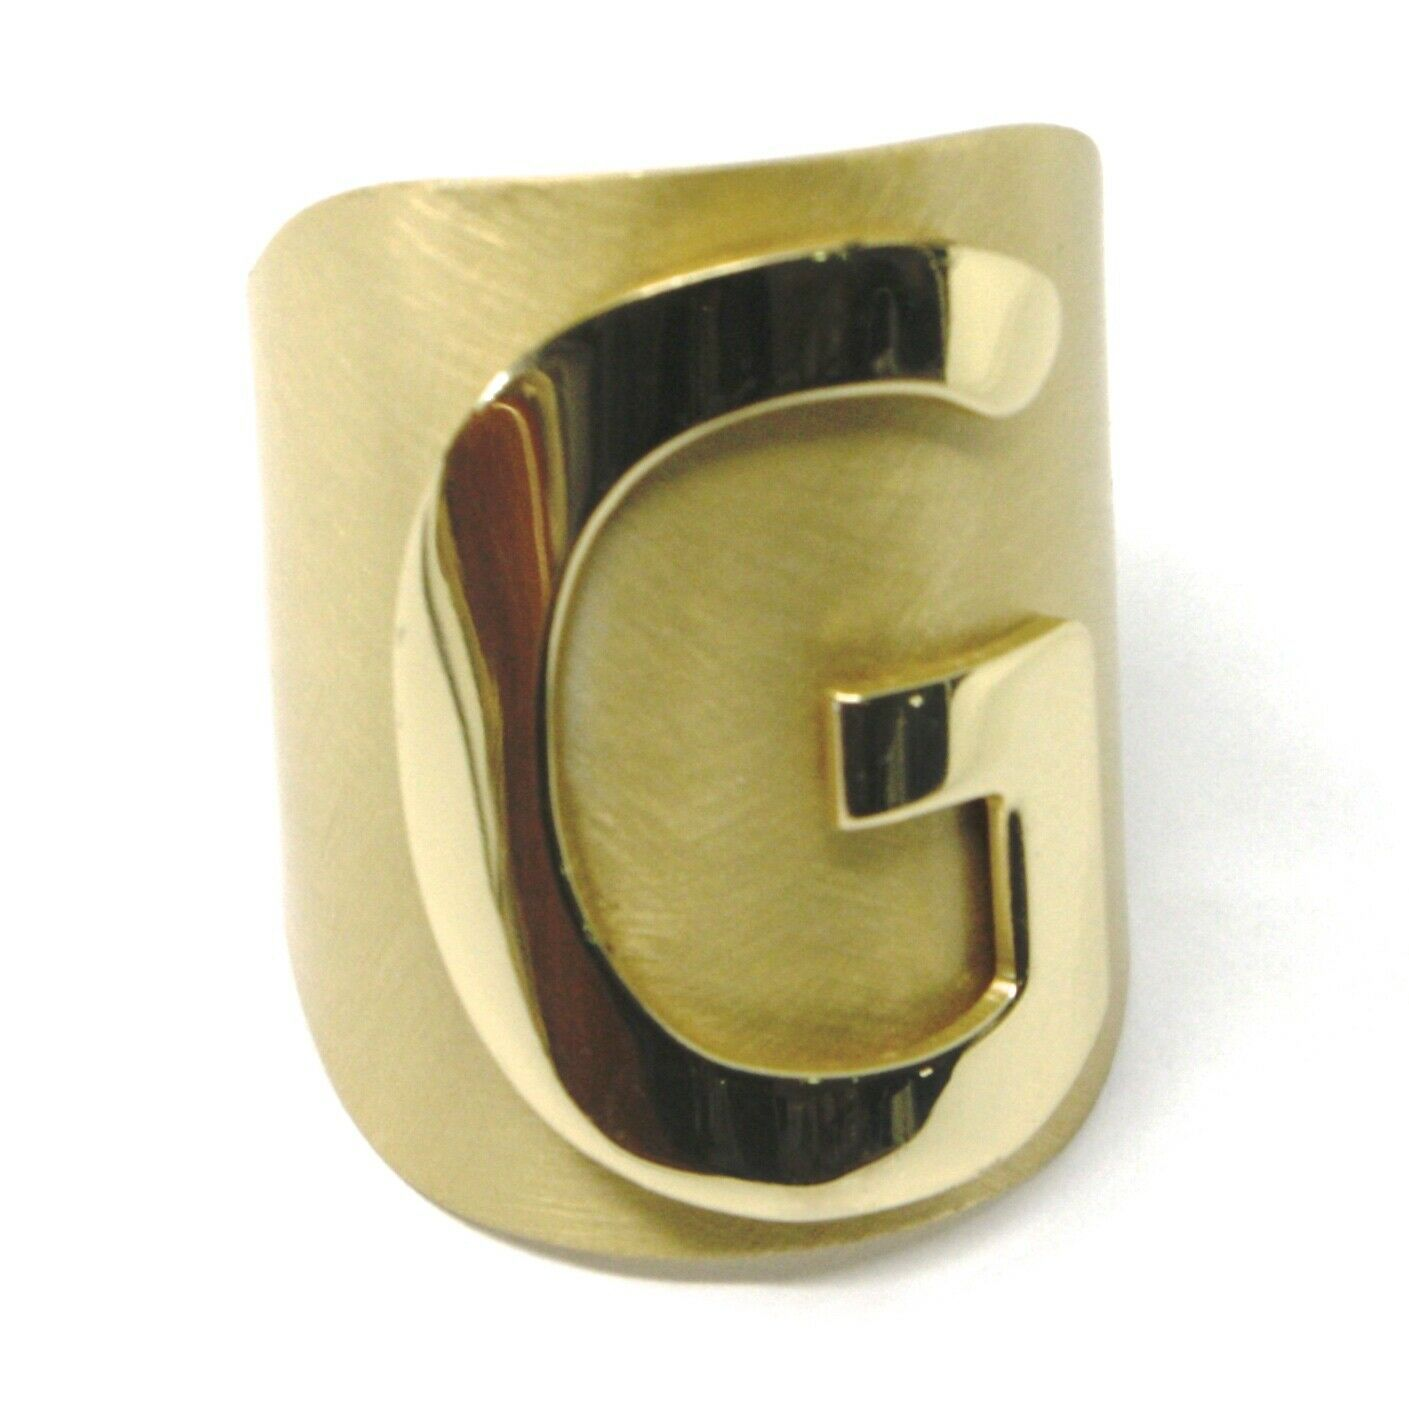 SOLID 925 STERLING SILVER BAND RING, BIG LETTER G, YELLOW SATIN FINISH, SIZABLE